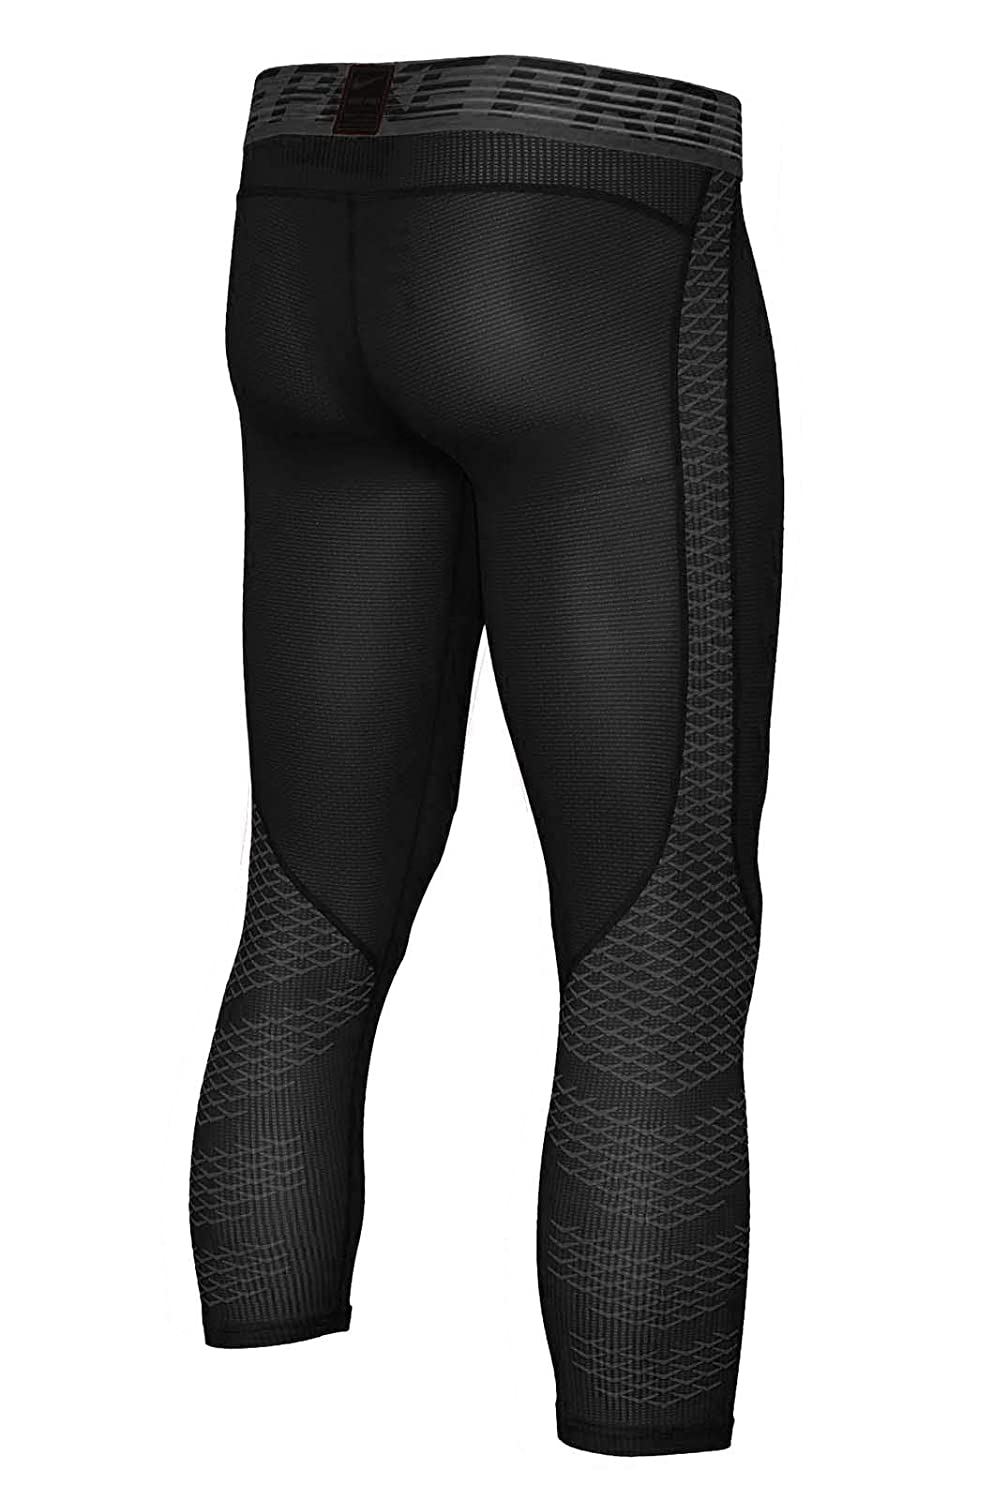 Nike Men's Pro Hypercool 34 Black Tights 932411 010